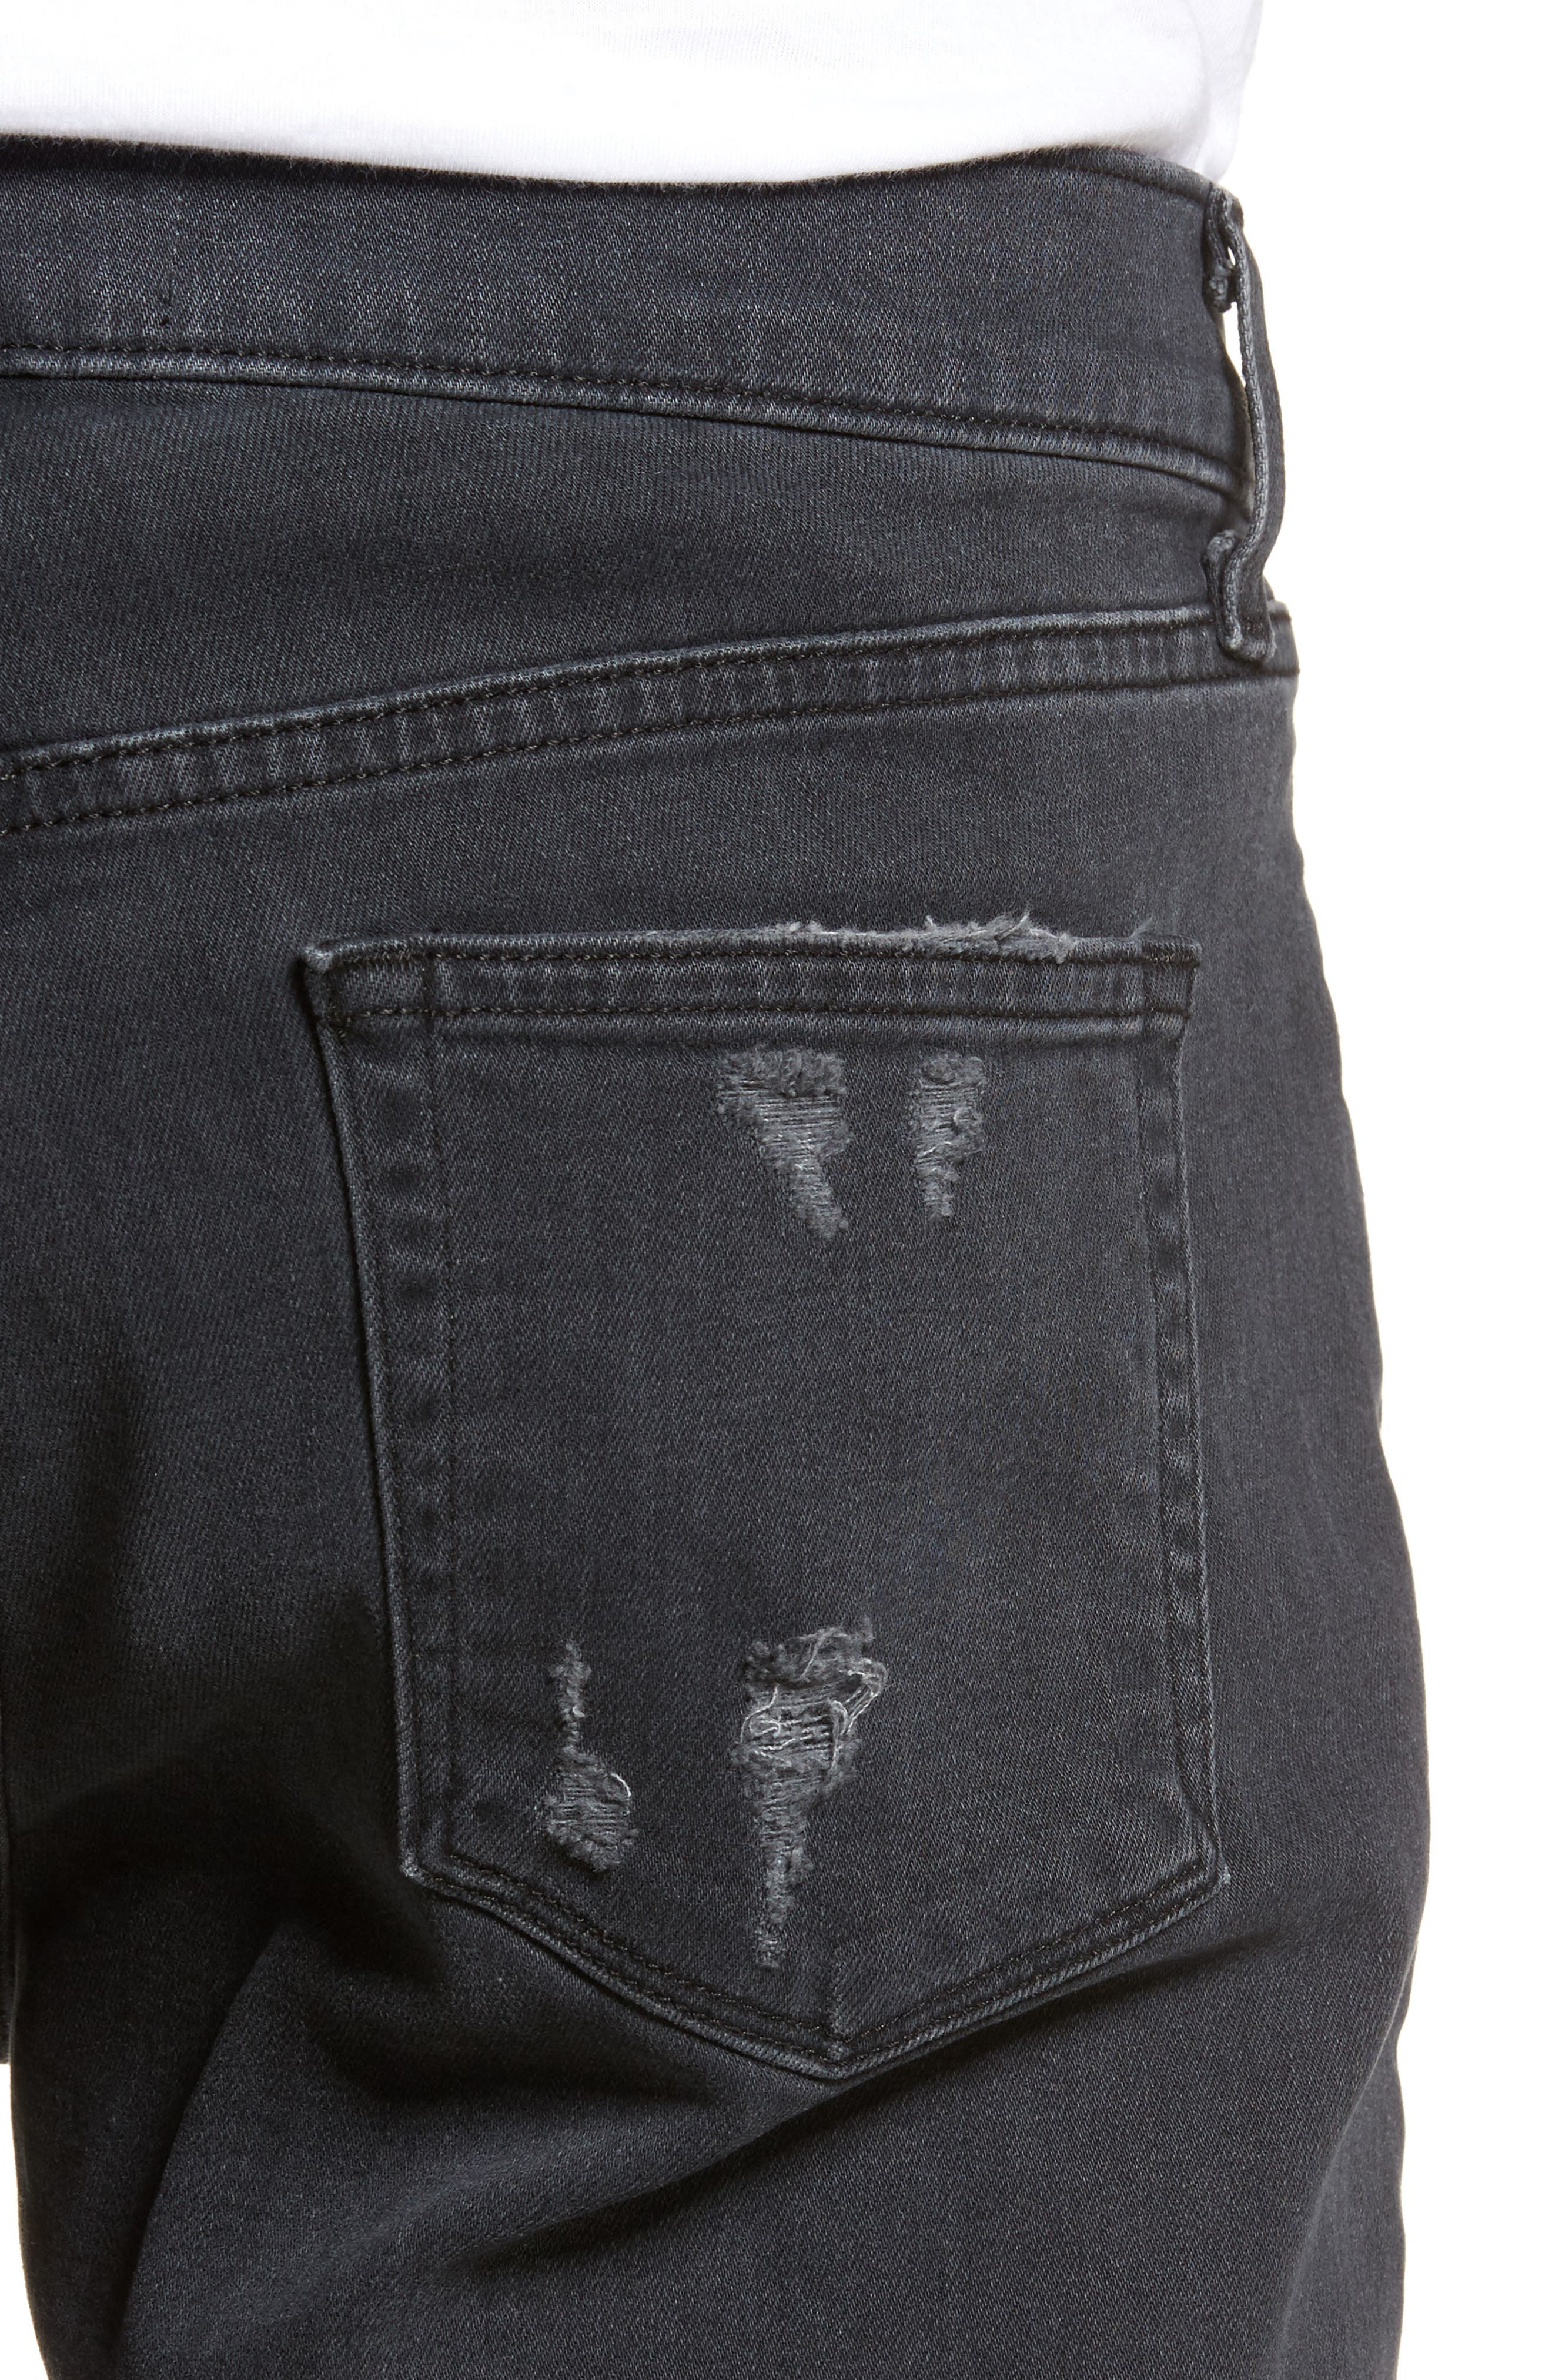 Tyler Slim Fit Jeans,                             Alternate thumbnail 4, color,                             Glauconite